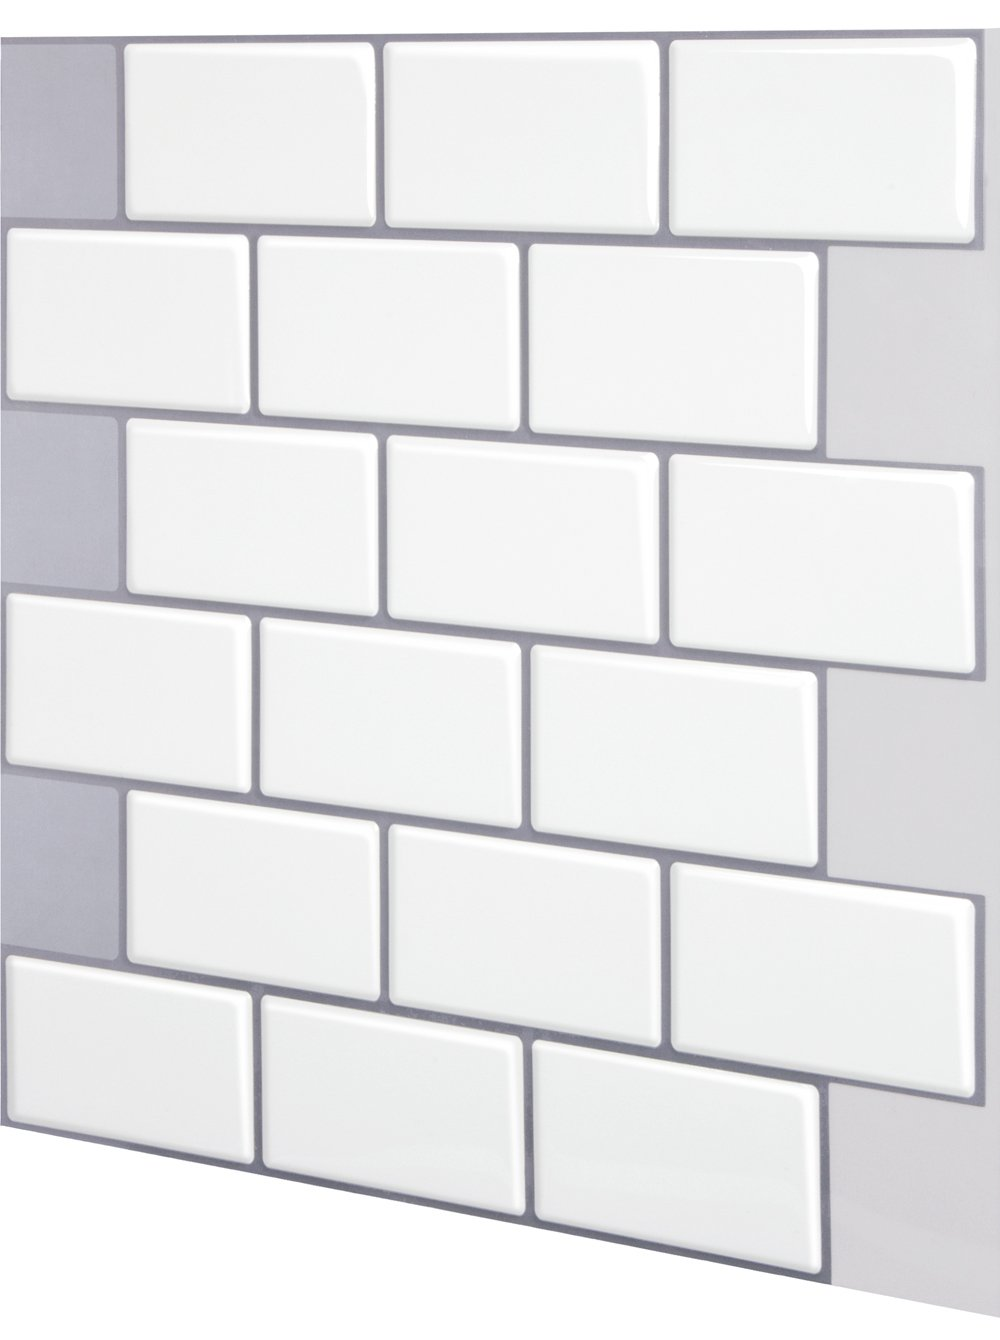 Tic Tac Tiles 174 Peel And Stick Smart Backsplash Tile